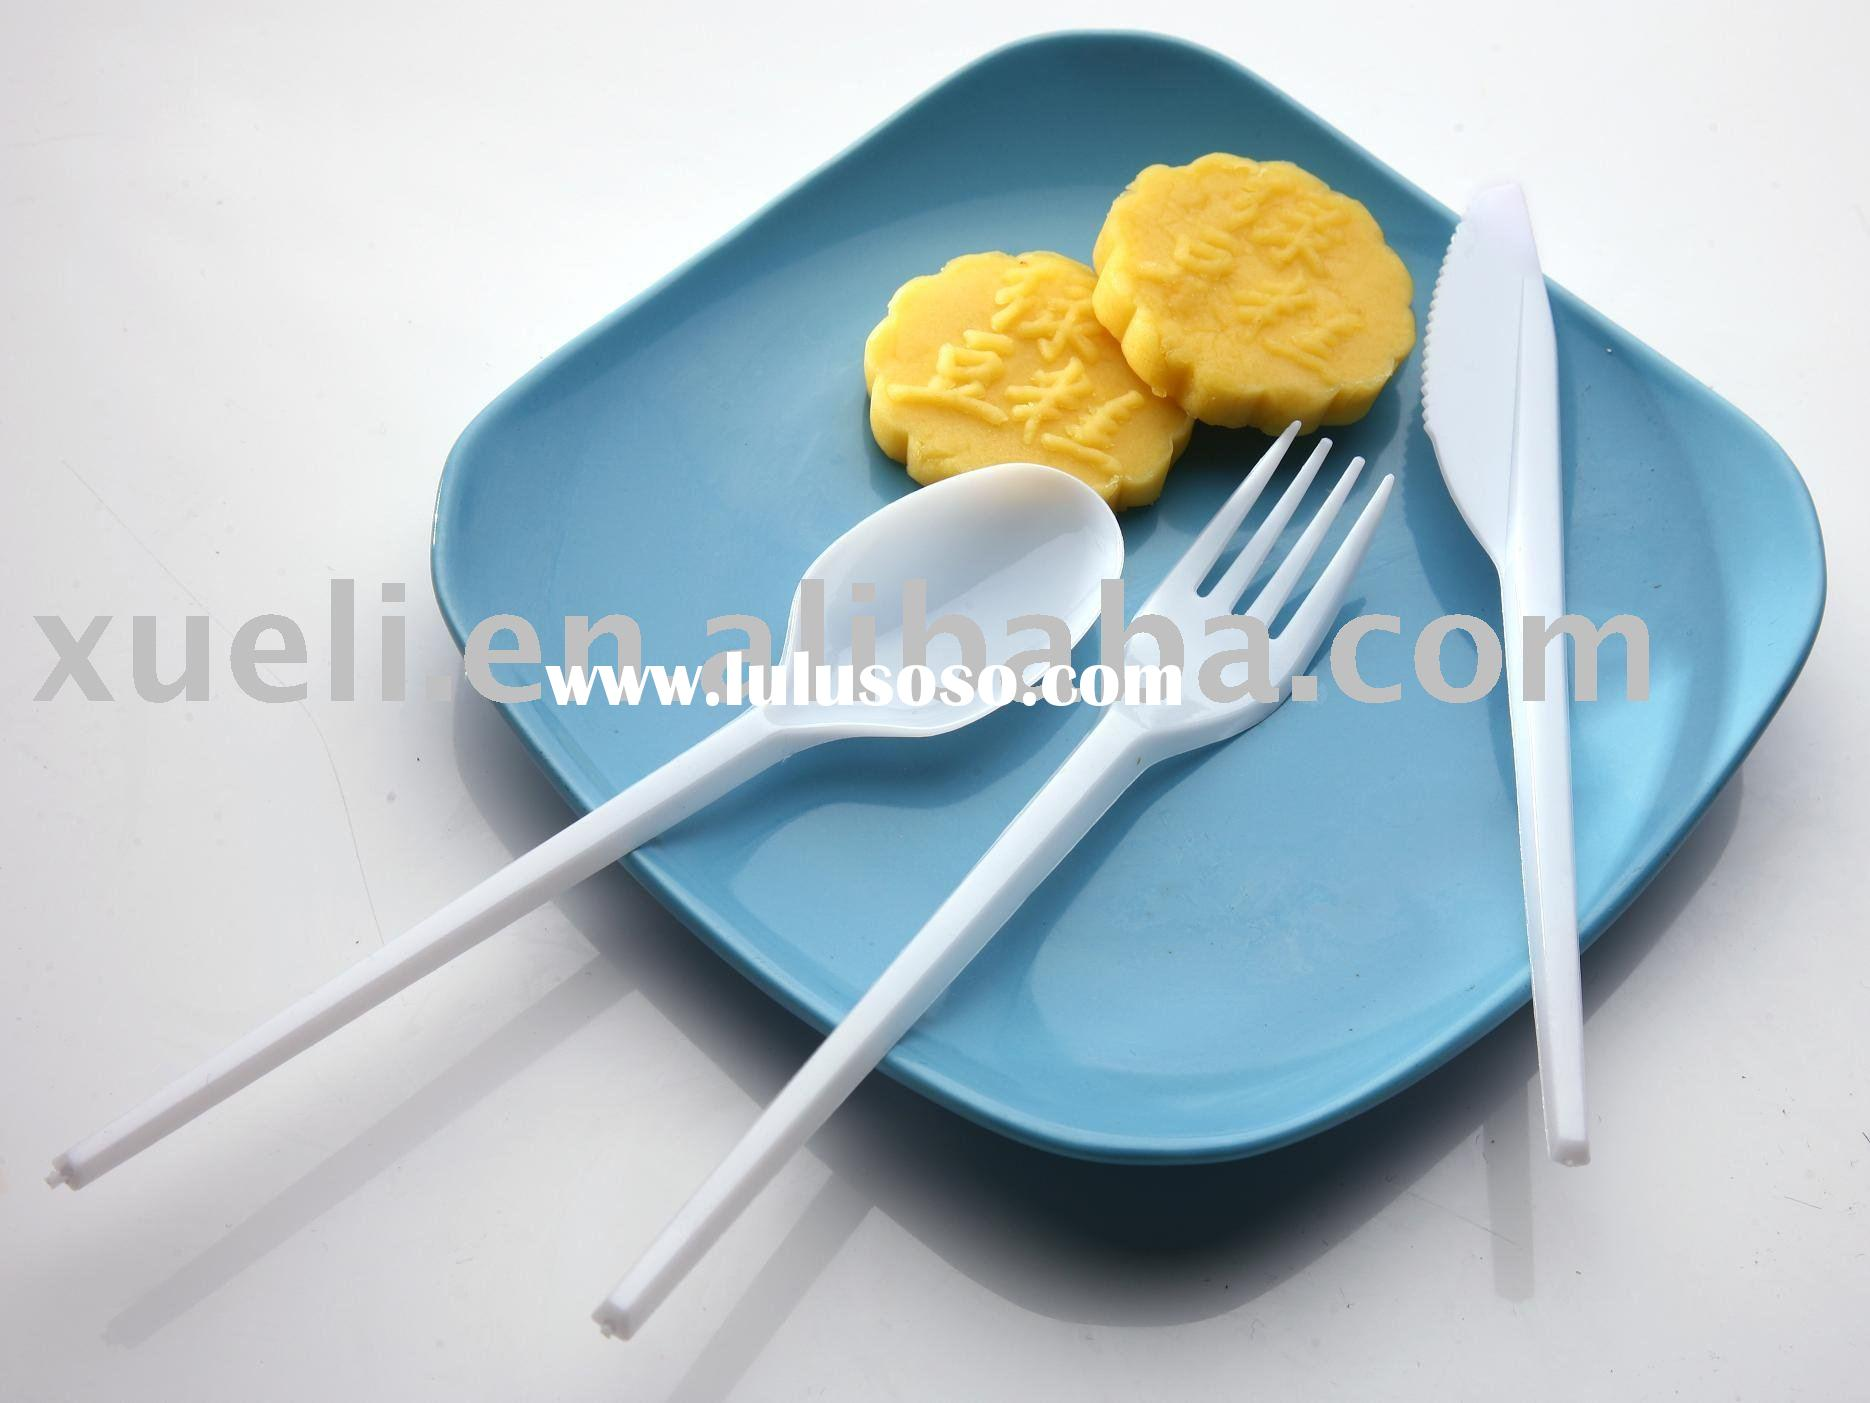 disposable plastic spoon knife and fork 7#